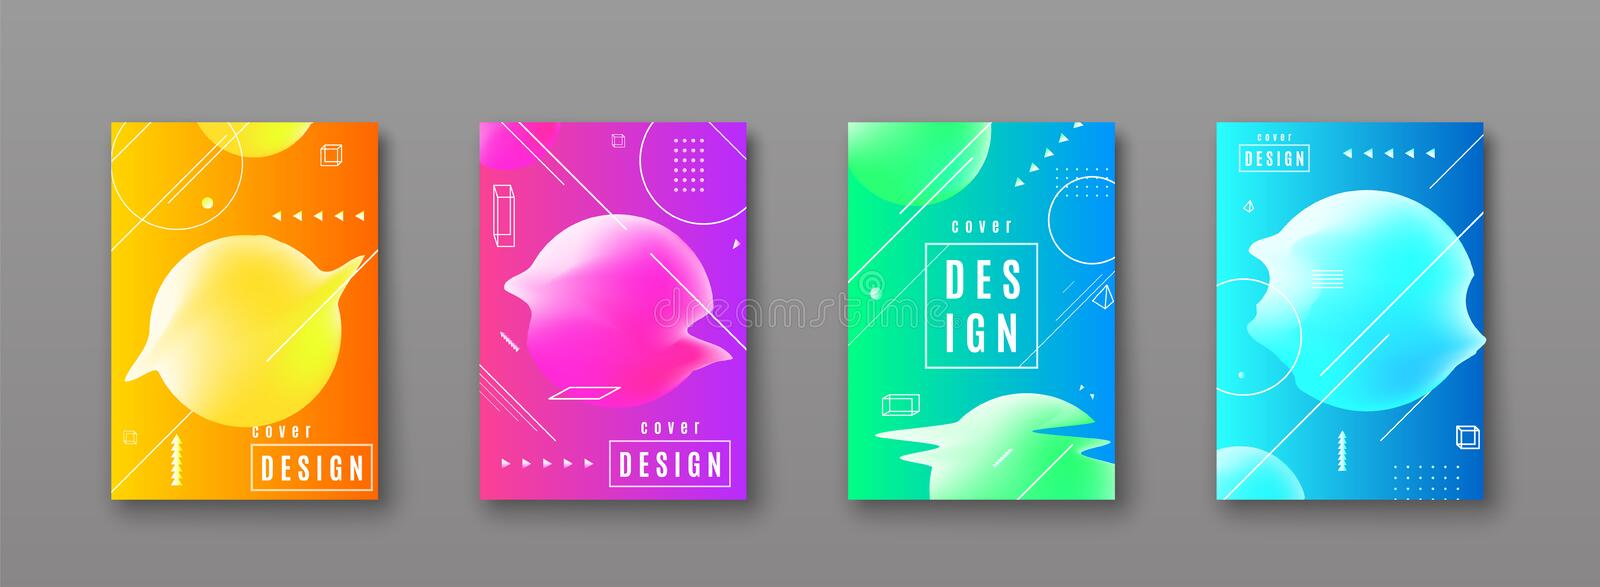 Bright color abstract pattern background with line gradient texture stock illustration